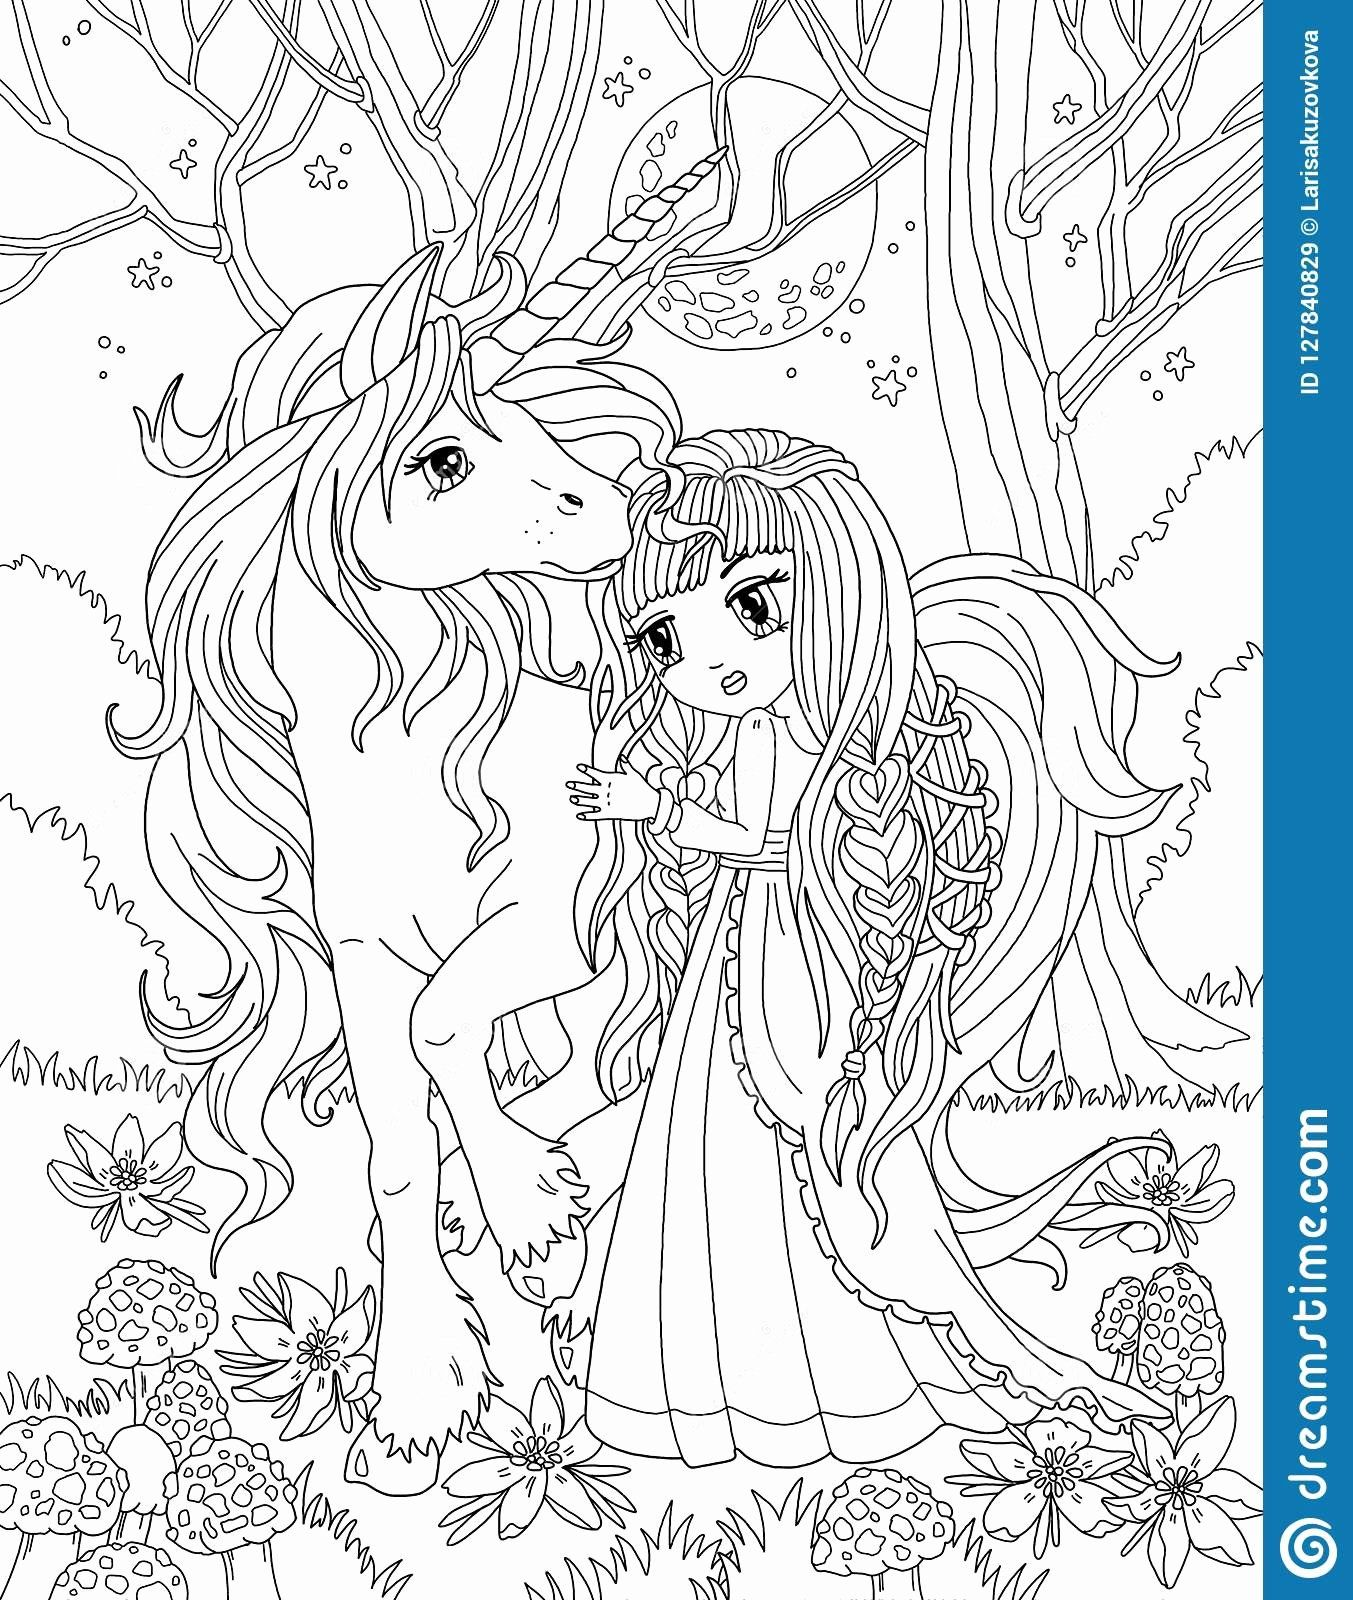 Princess Unicorn Coloring Pages Beautiful Princess Unicorn Coloring Page Album Sabadaphnecotta Princess Coloring Pages Princess Coloring Unicorn Coloring Pages